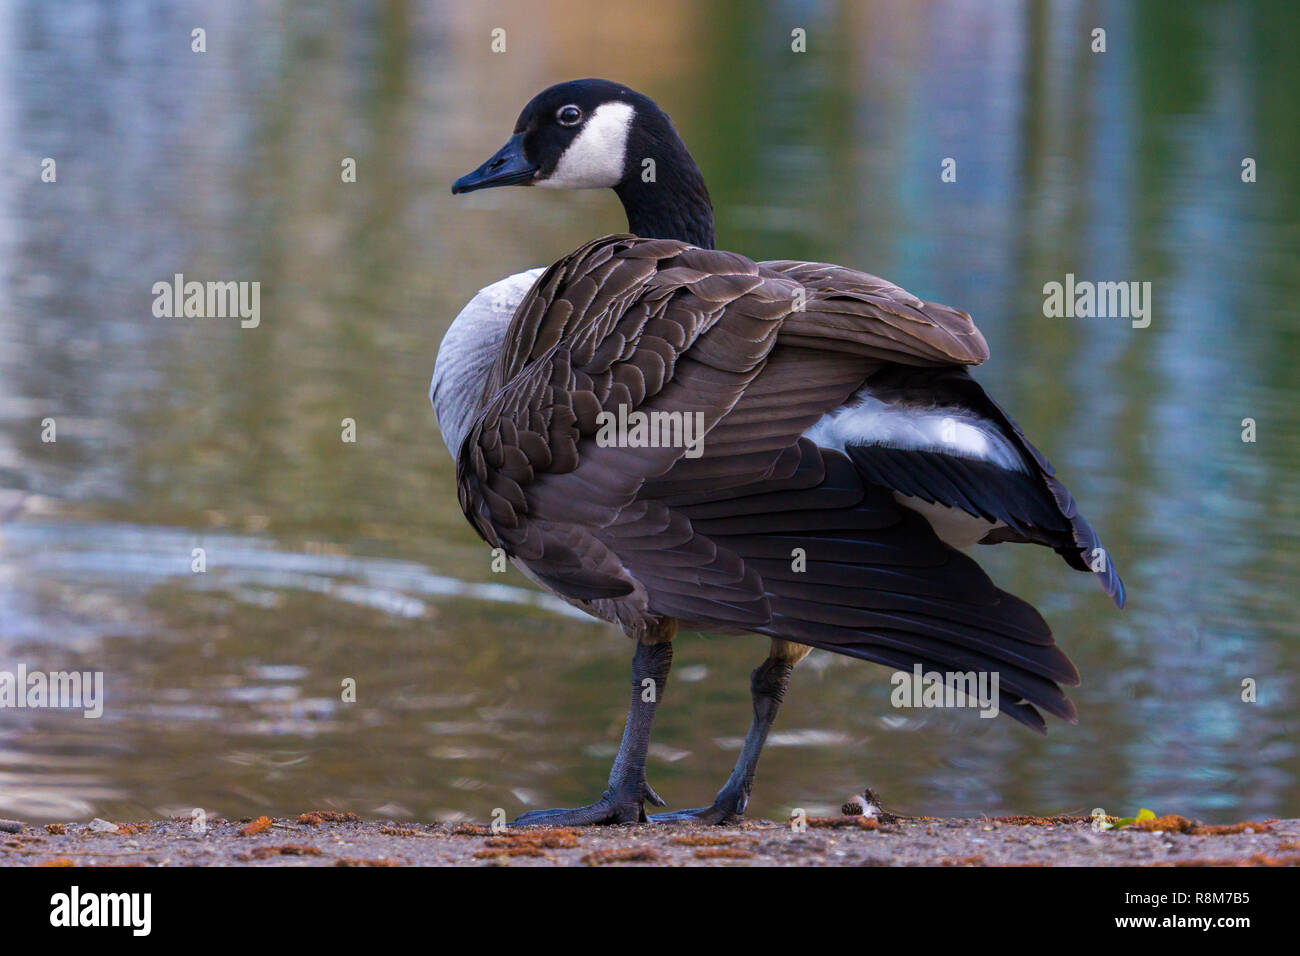 Close-up of a Canada goose (Branta canadensis) at the Lake, - Stock Image